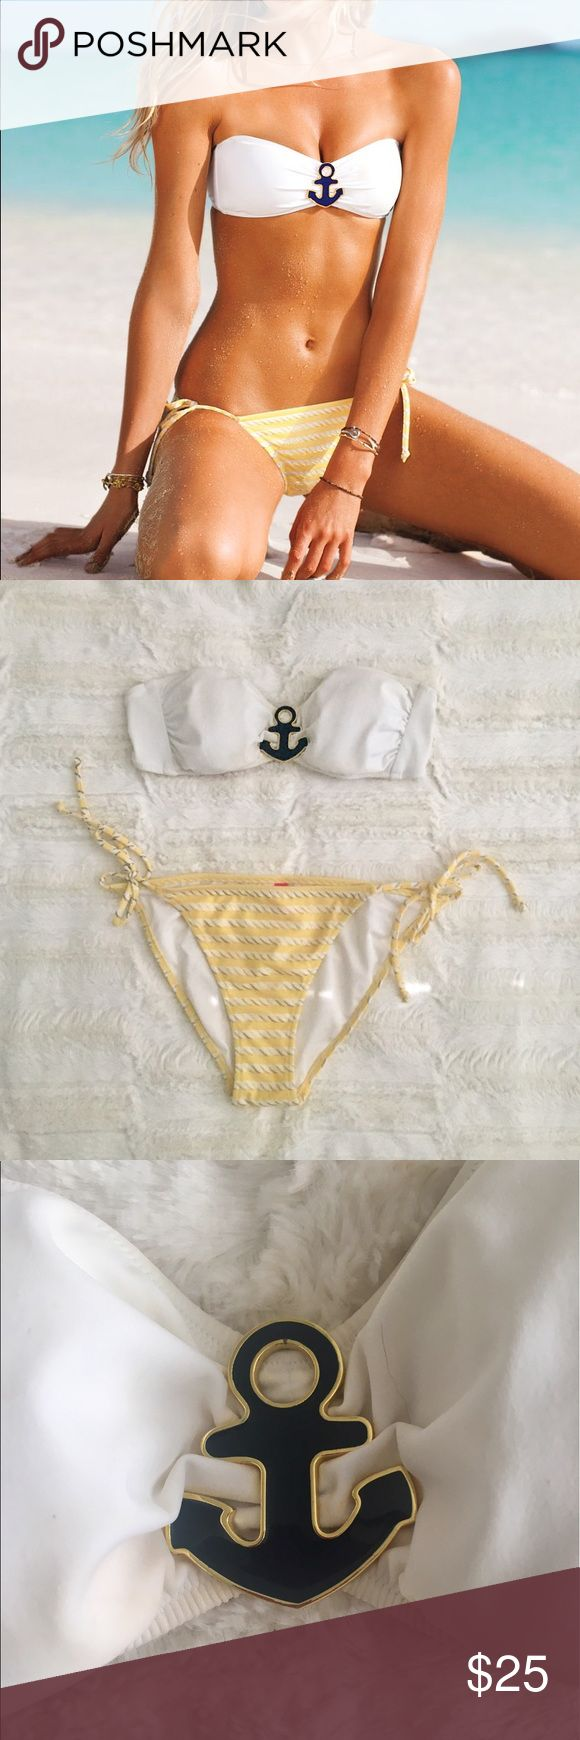 VS White Nautical Bikini Adorable VS Bikini with bandeau top and removable straps. Bottom has a cute pattern, so cute for summer! Excellent Condition, lucky if I wore it twice. Too many suits. Victoria's Secret Swim Bikinis